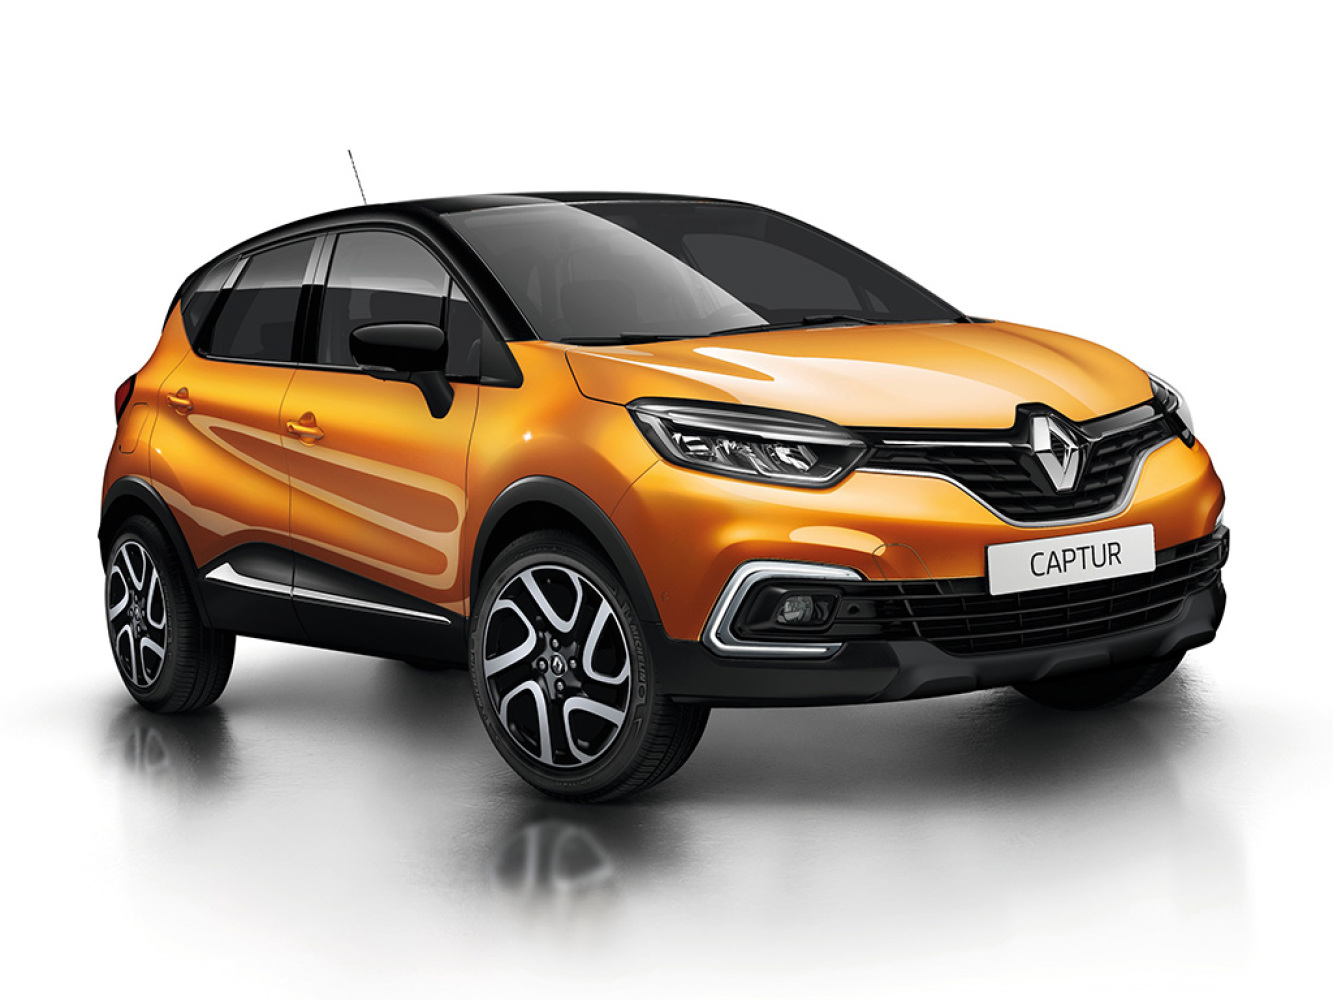 new renault captur 0 9 tce 90 gt line 5dr petrol hatchback for sale bristol street. Black Bedroom Furniture Sets. Home Design Ideas